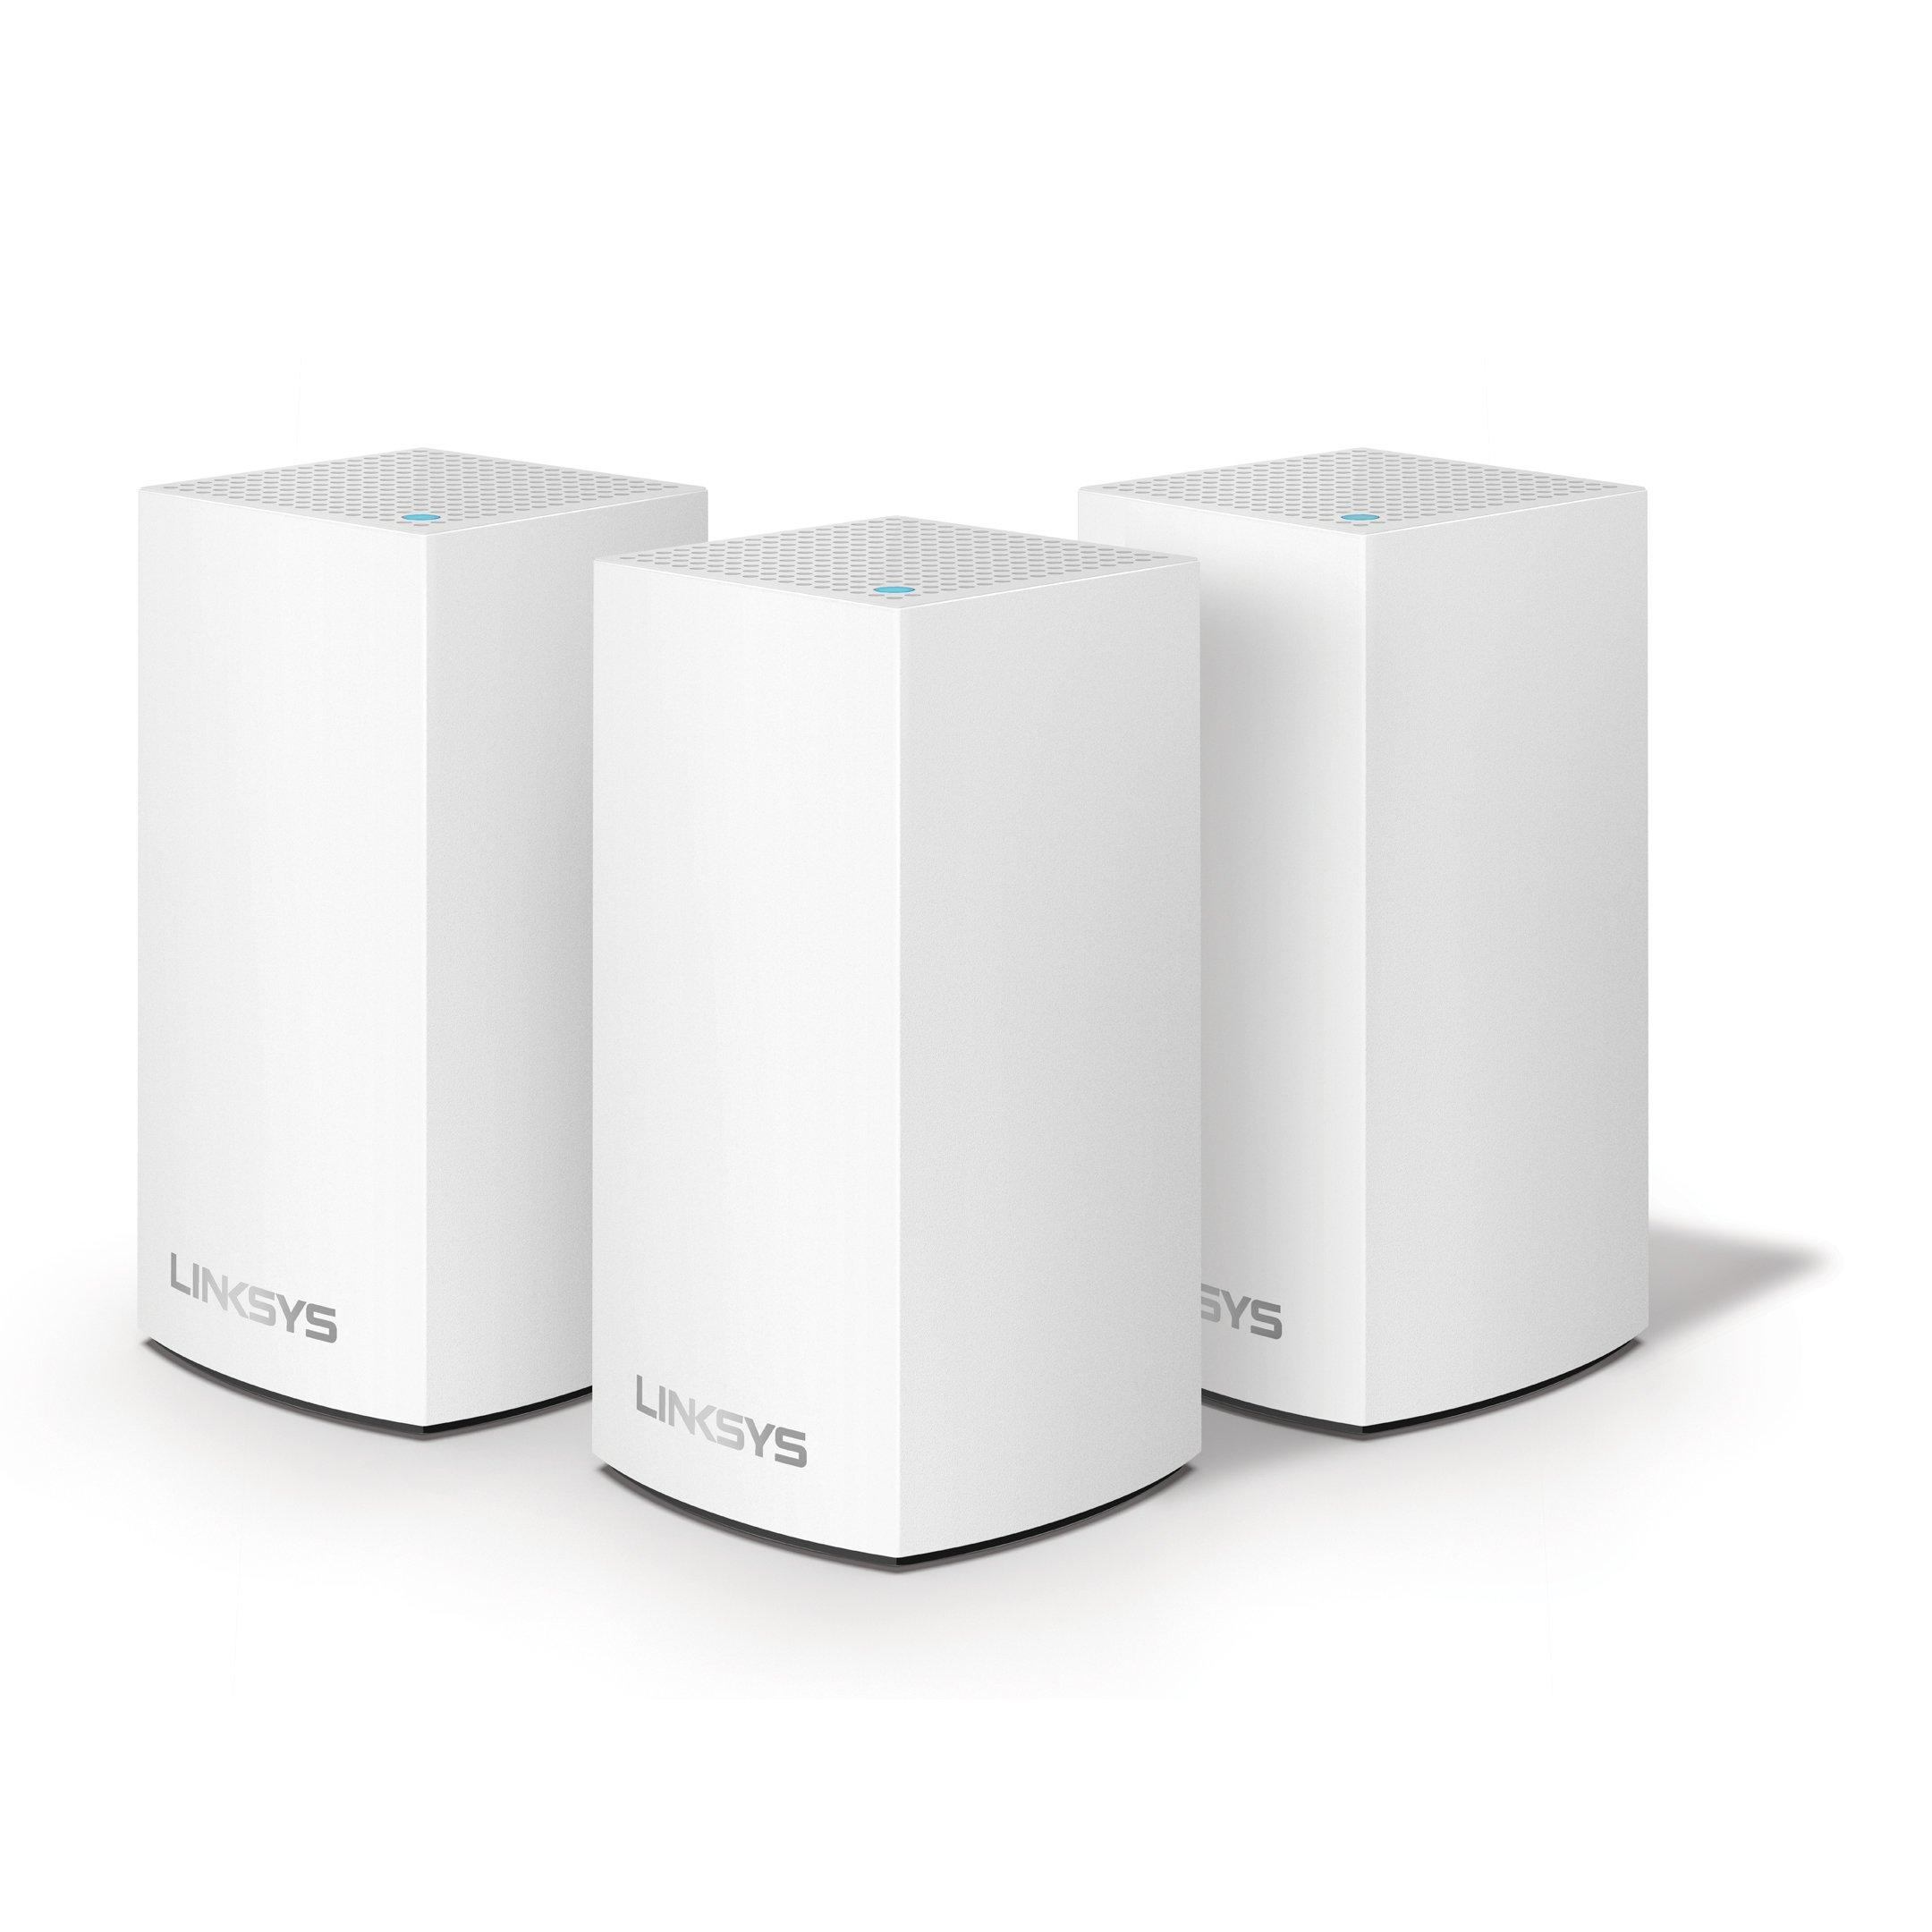 LINKSYS VELOP, 3 Devices, Dual Band AC3900, White